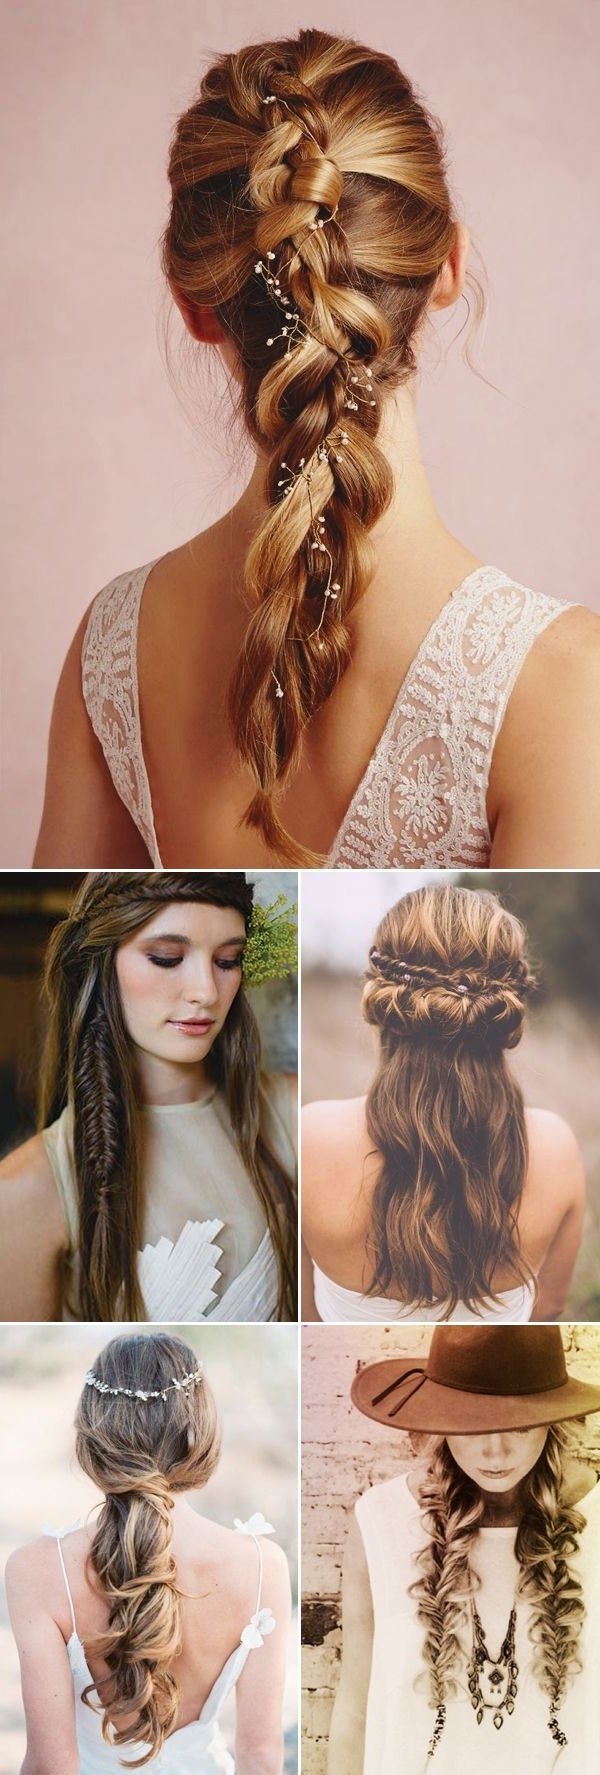 28 Fancy Braided Hairstyles For Long Hair 2016 – Pretty Designs Regarding Current Long Braided Hairstyles (View 8 of 15)